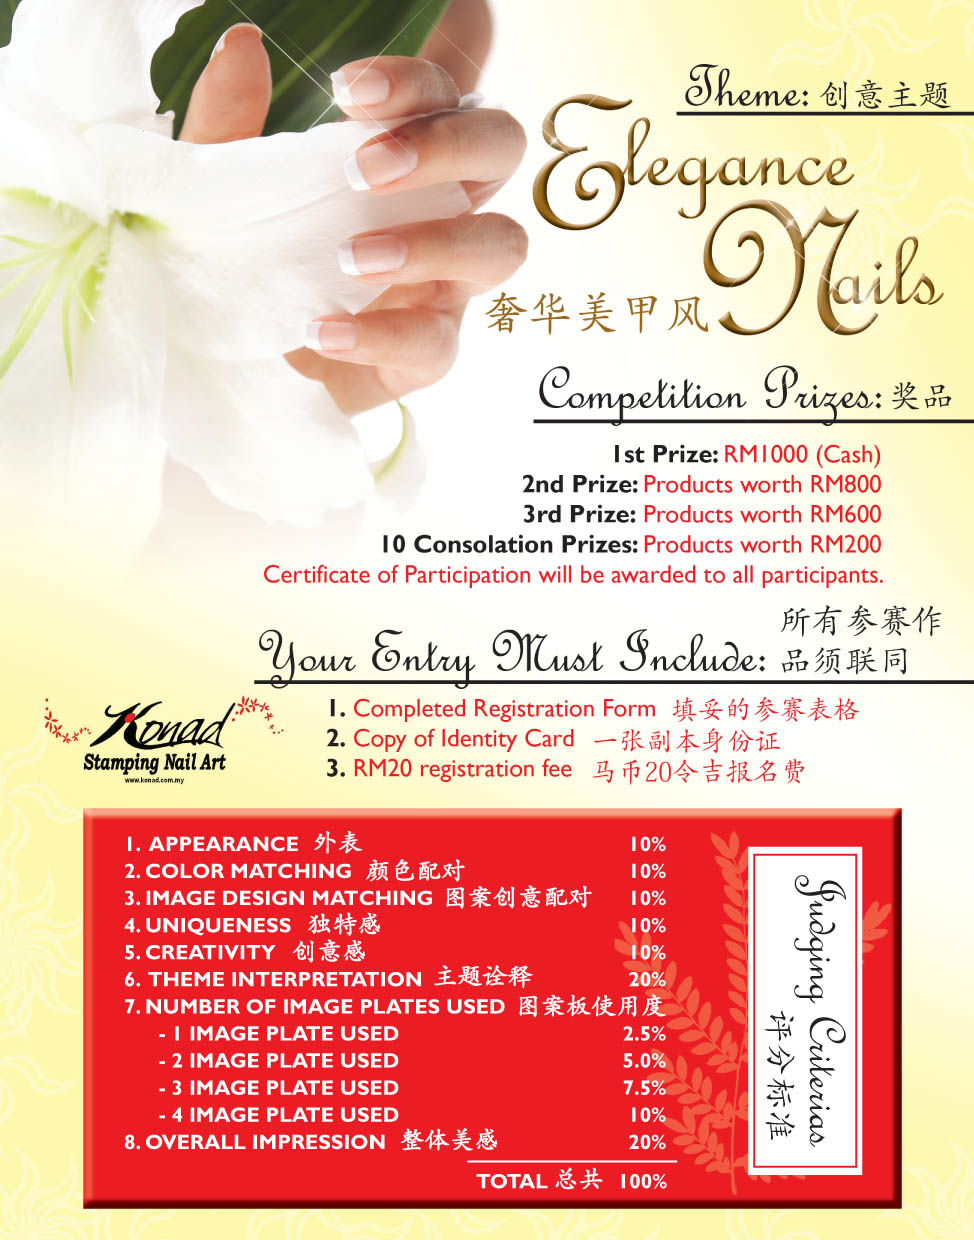 Nail Salon Flyer Konad stamping nail art